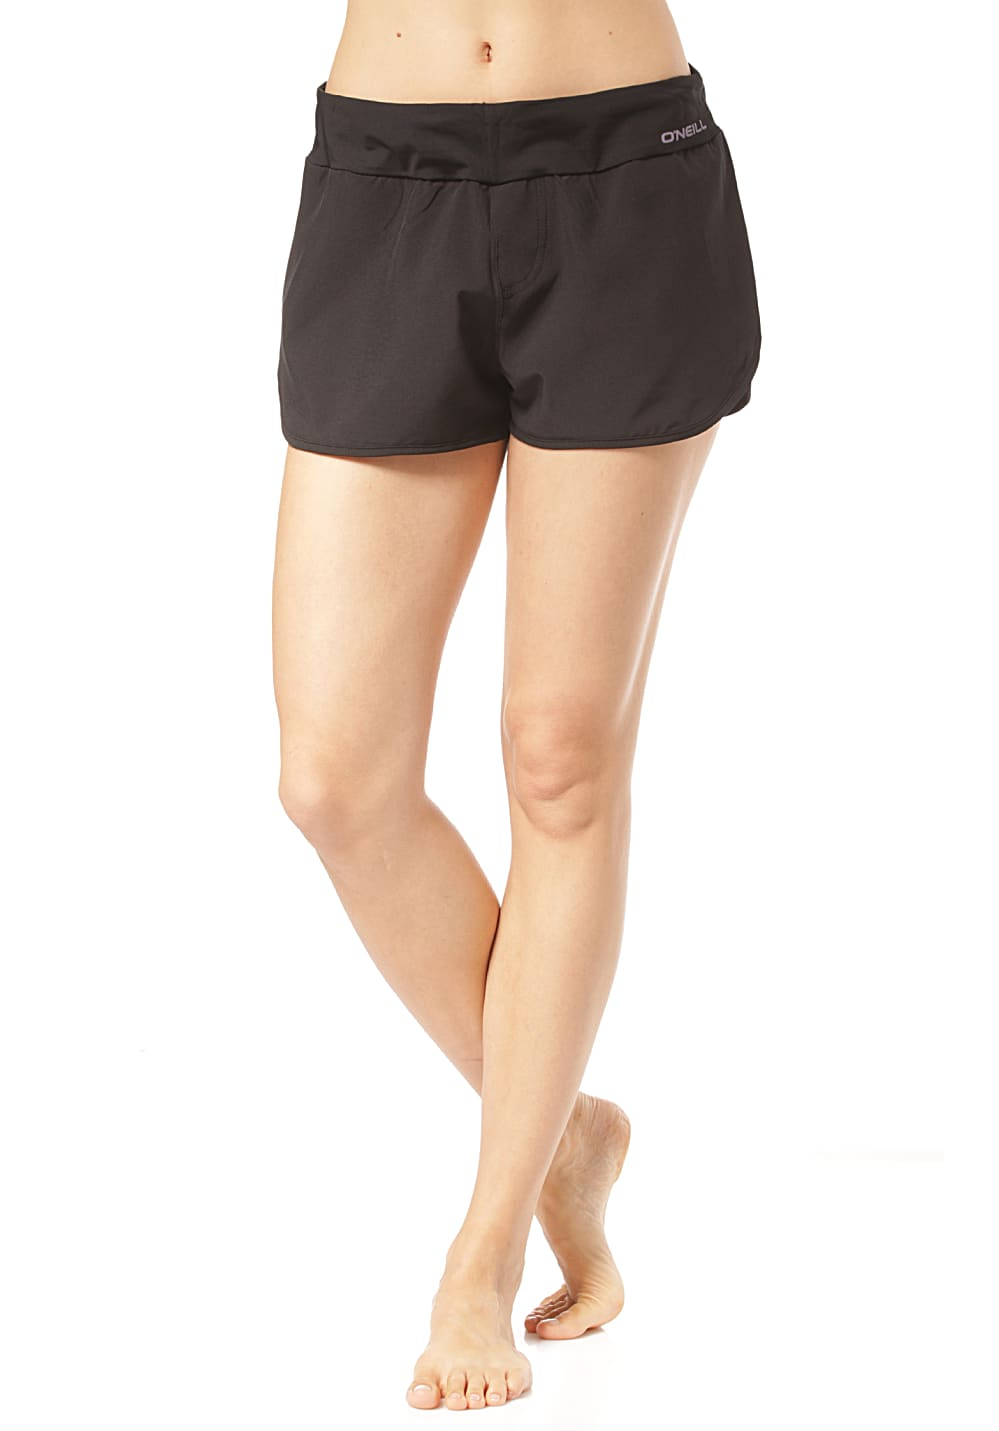 Bademode - O'Neill Essential Boardshorts für Damen Schwarz  - Onlineshop Planet Sports